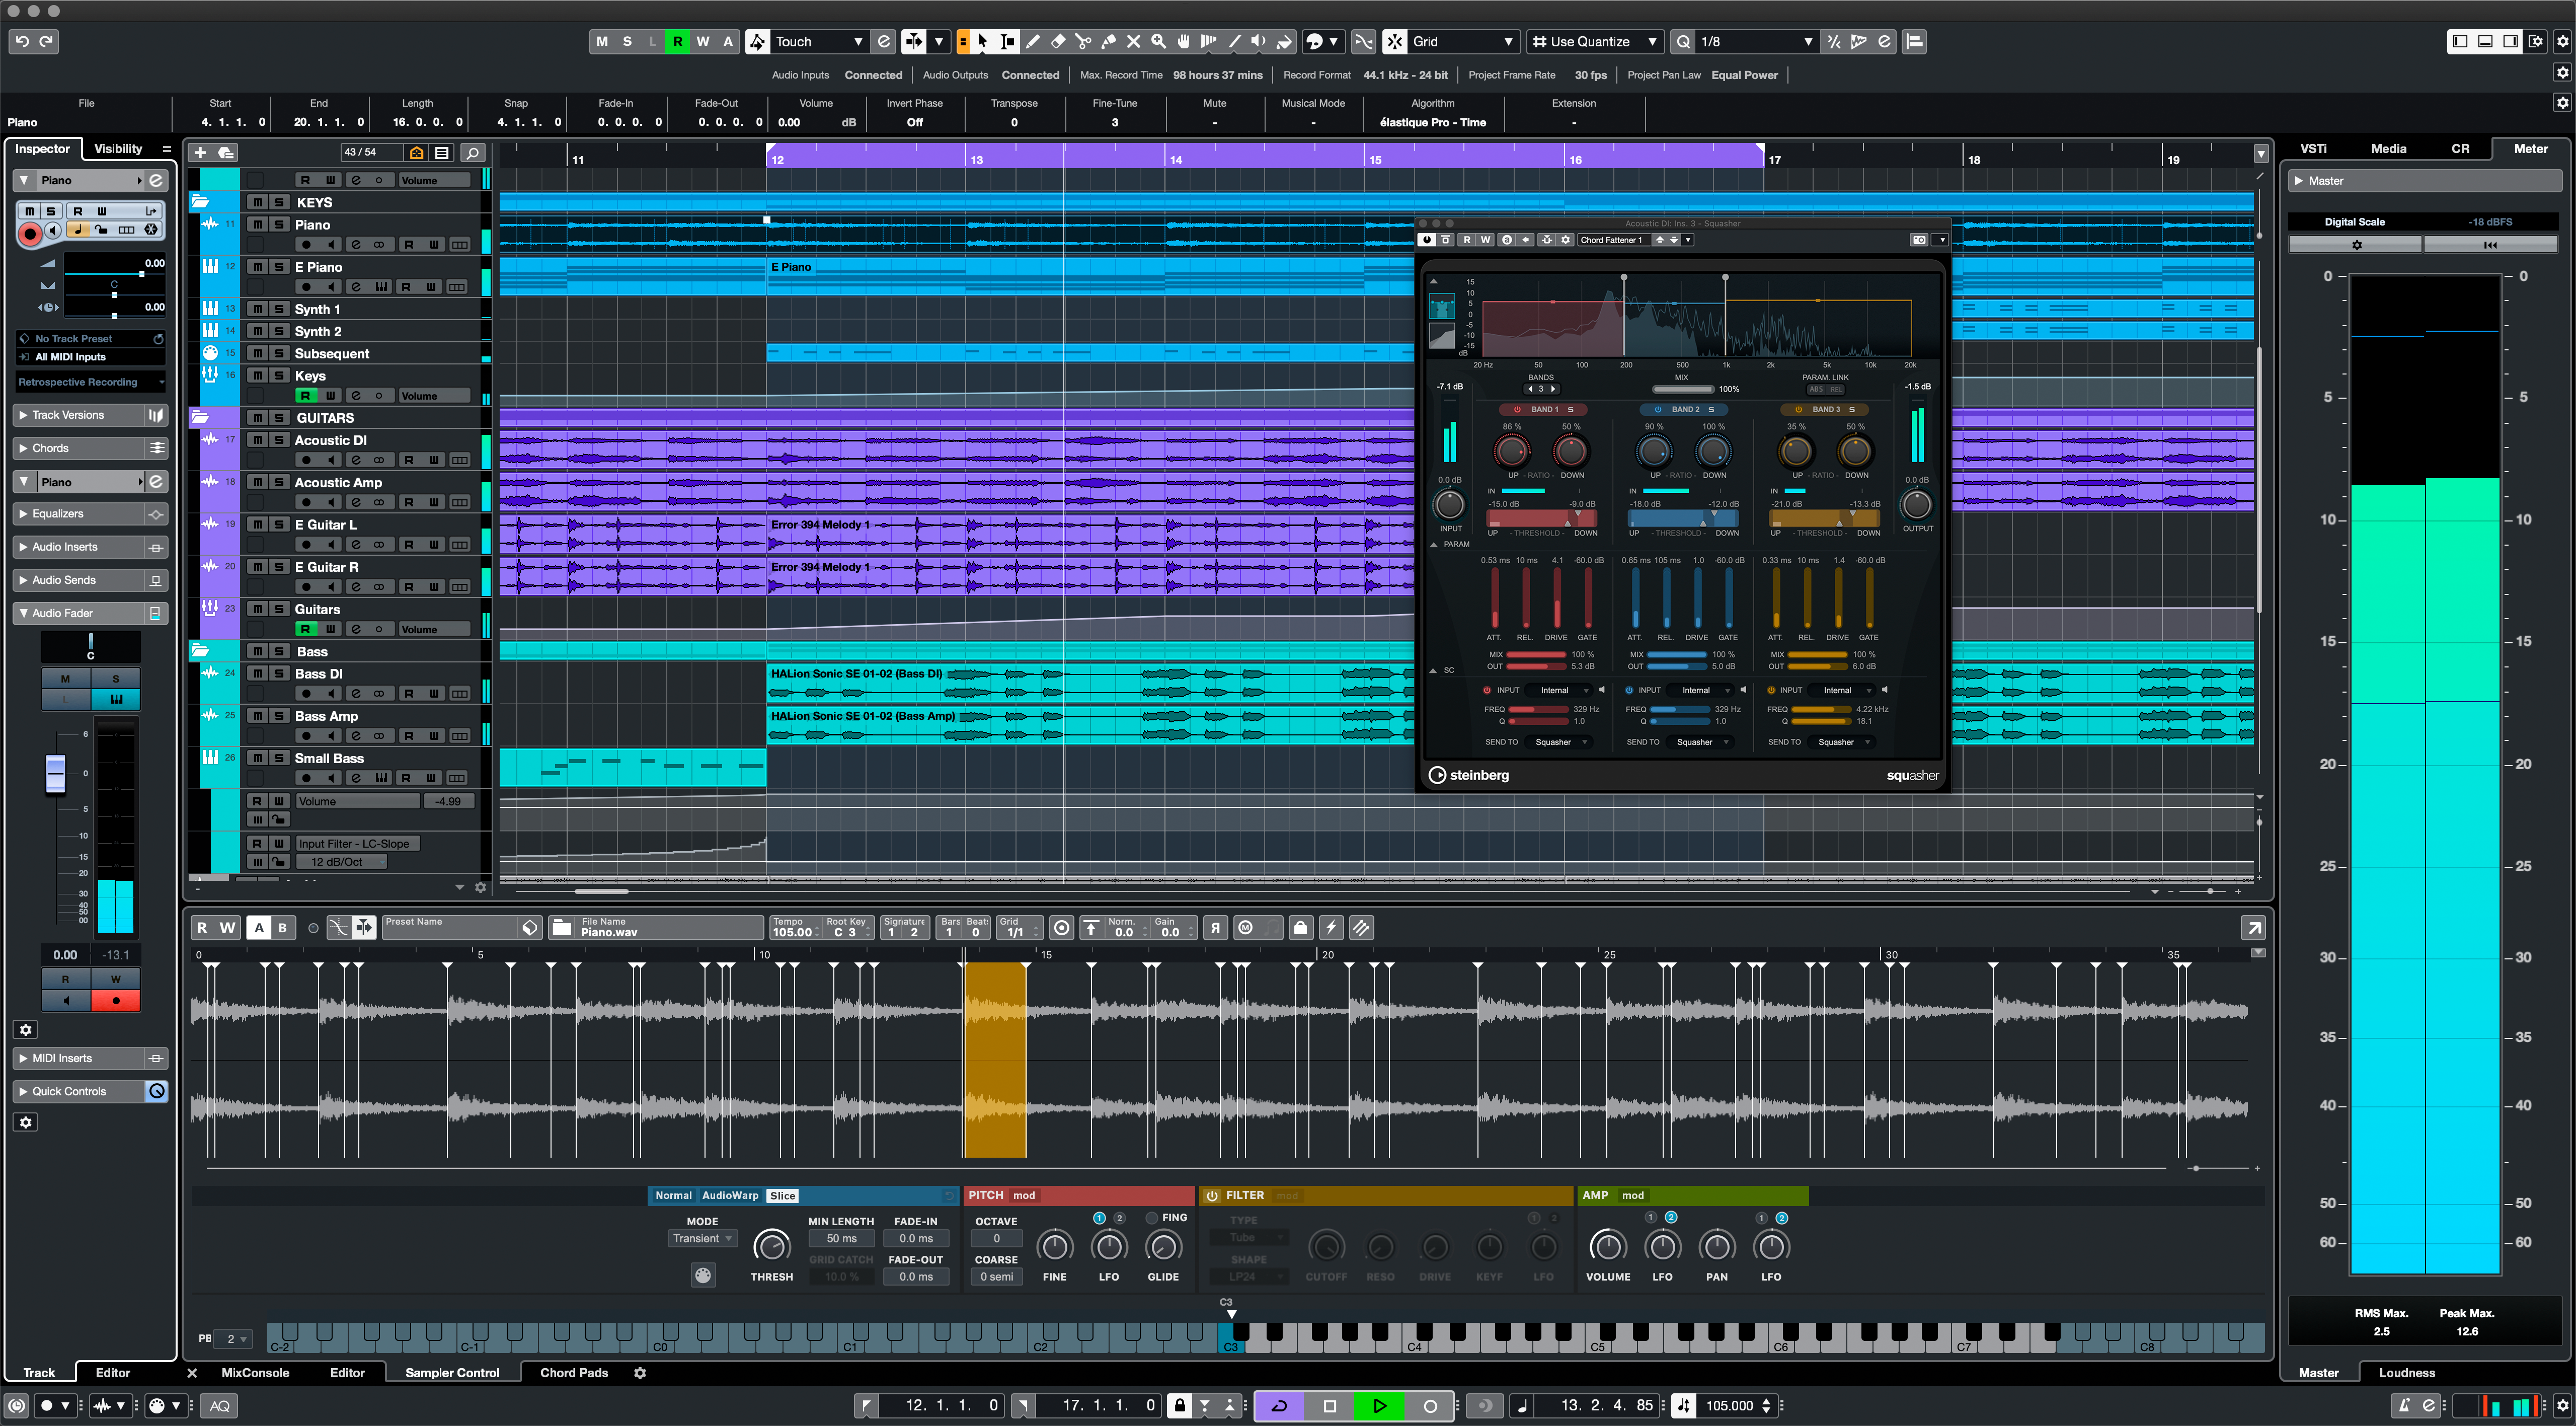 Try Cubase now for 30 days | Steinberg